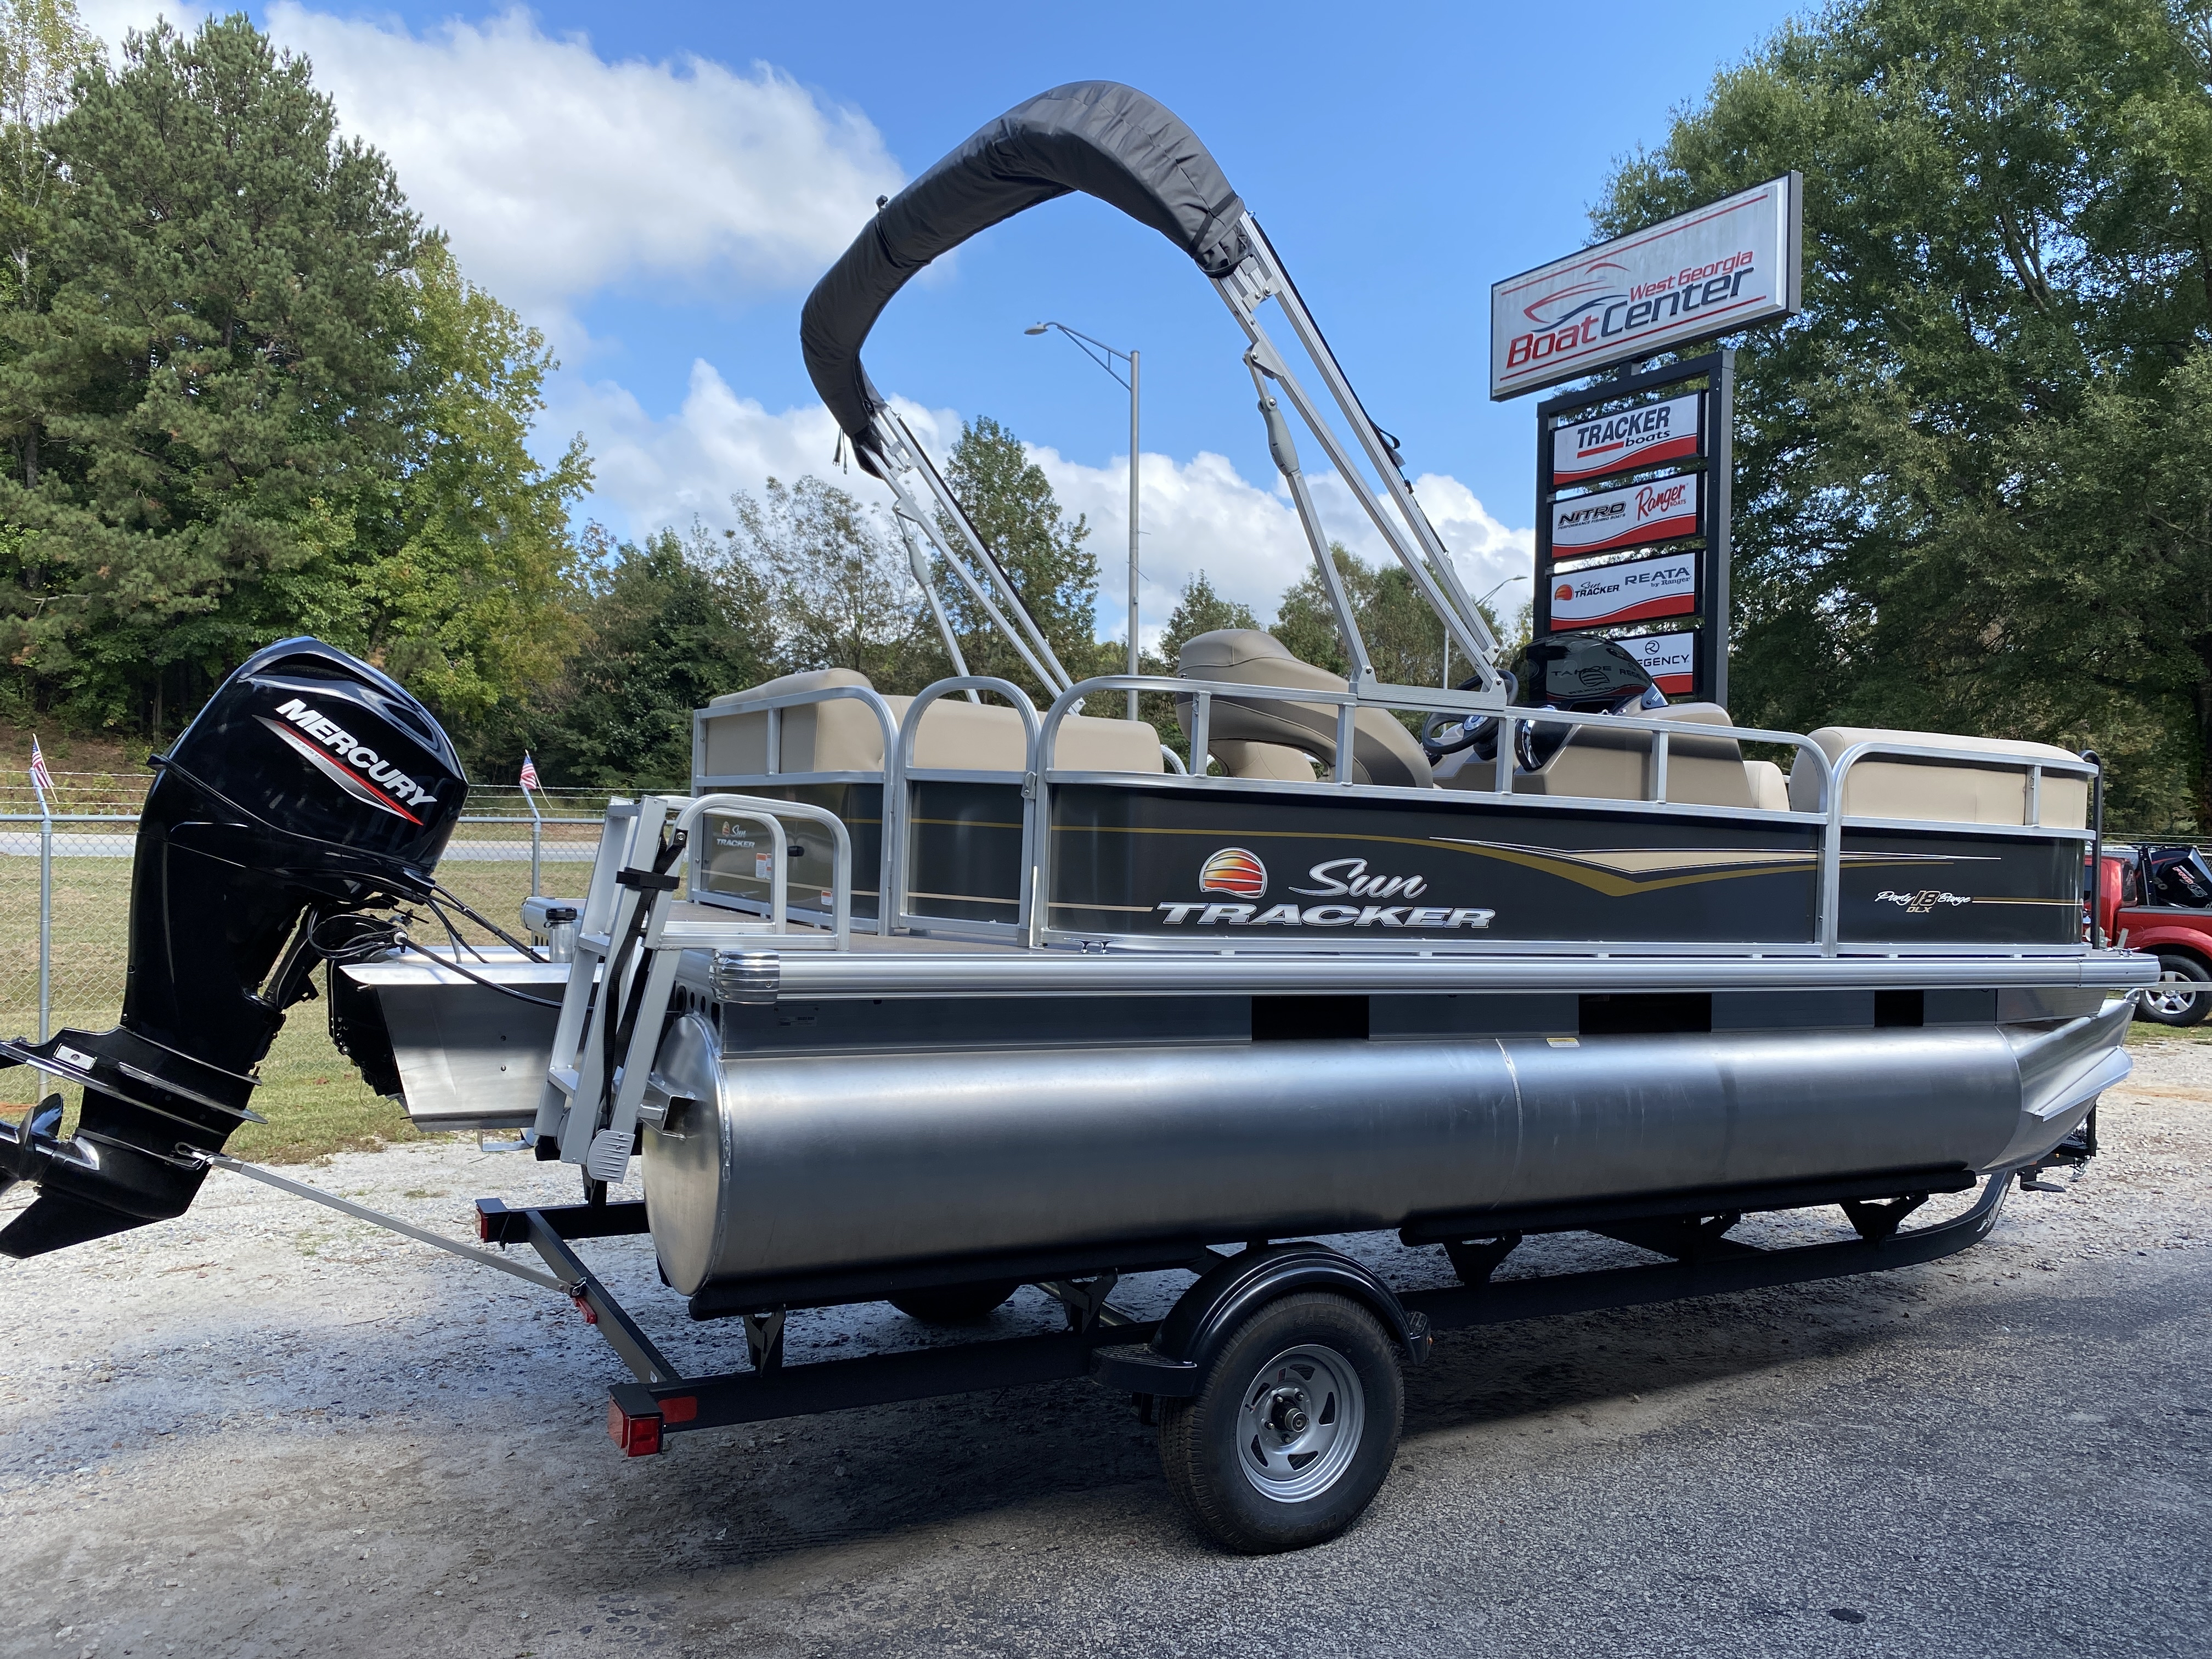 2021 Sun Tracker boat for sale, model of the boat is Party Barge 18 w/60ELPT 4S CT & Image # 17 of 50